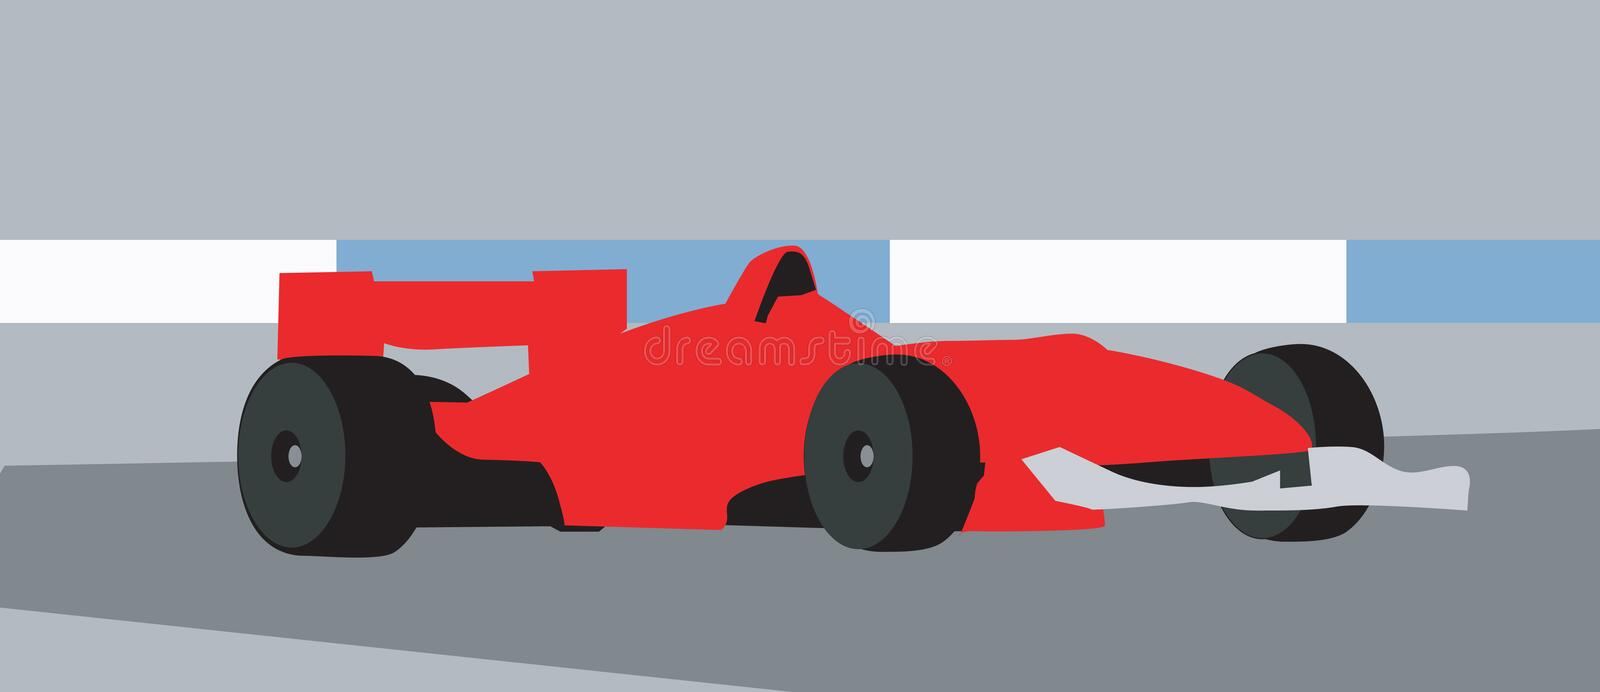 Corsa dell'automobile royalty illustrazione gratis